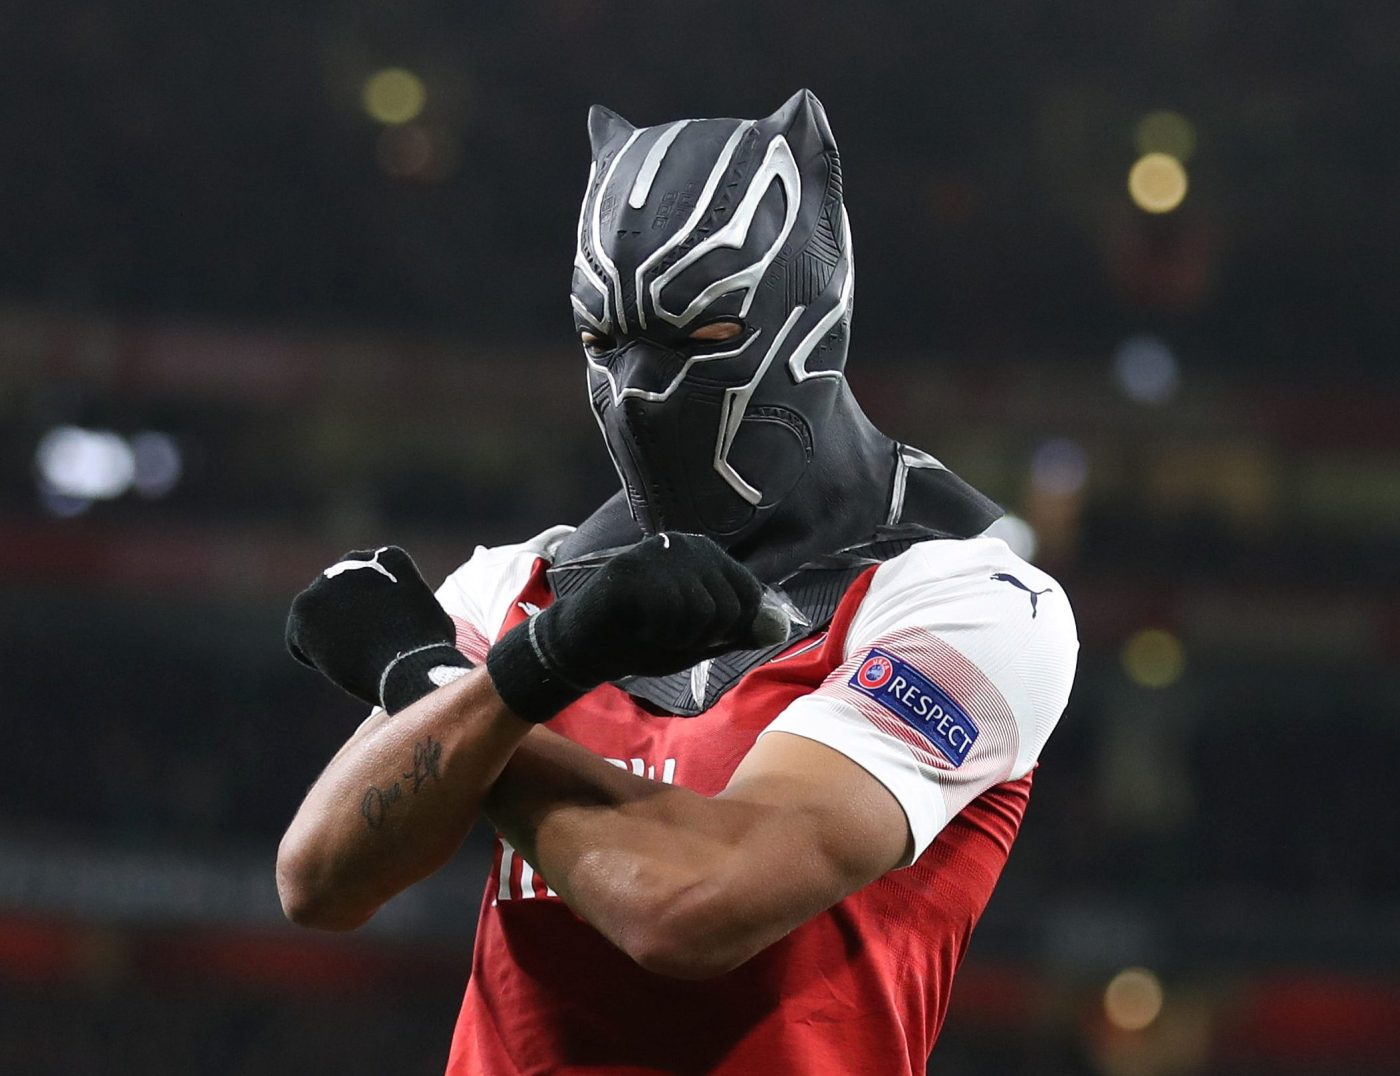 Aubameyang reveals Black Panther mask was tribute to his homeland Gabon  after Arsenal double against Rennes